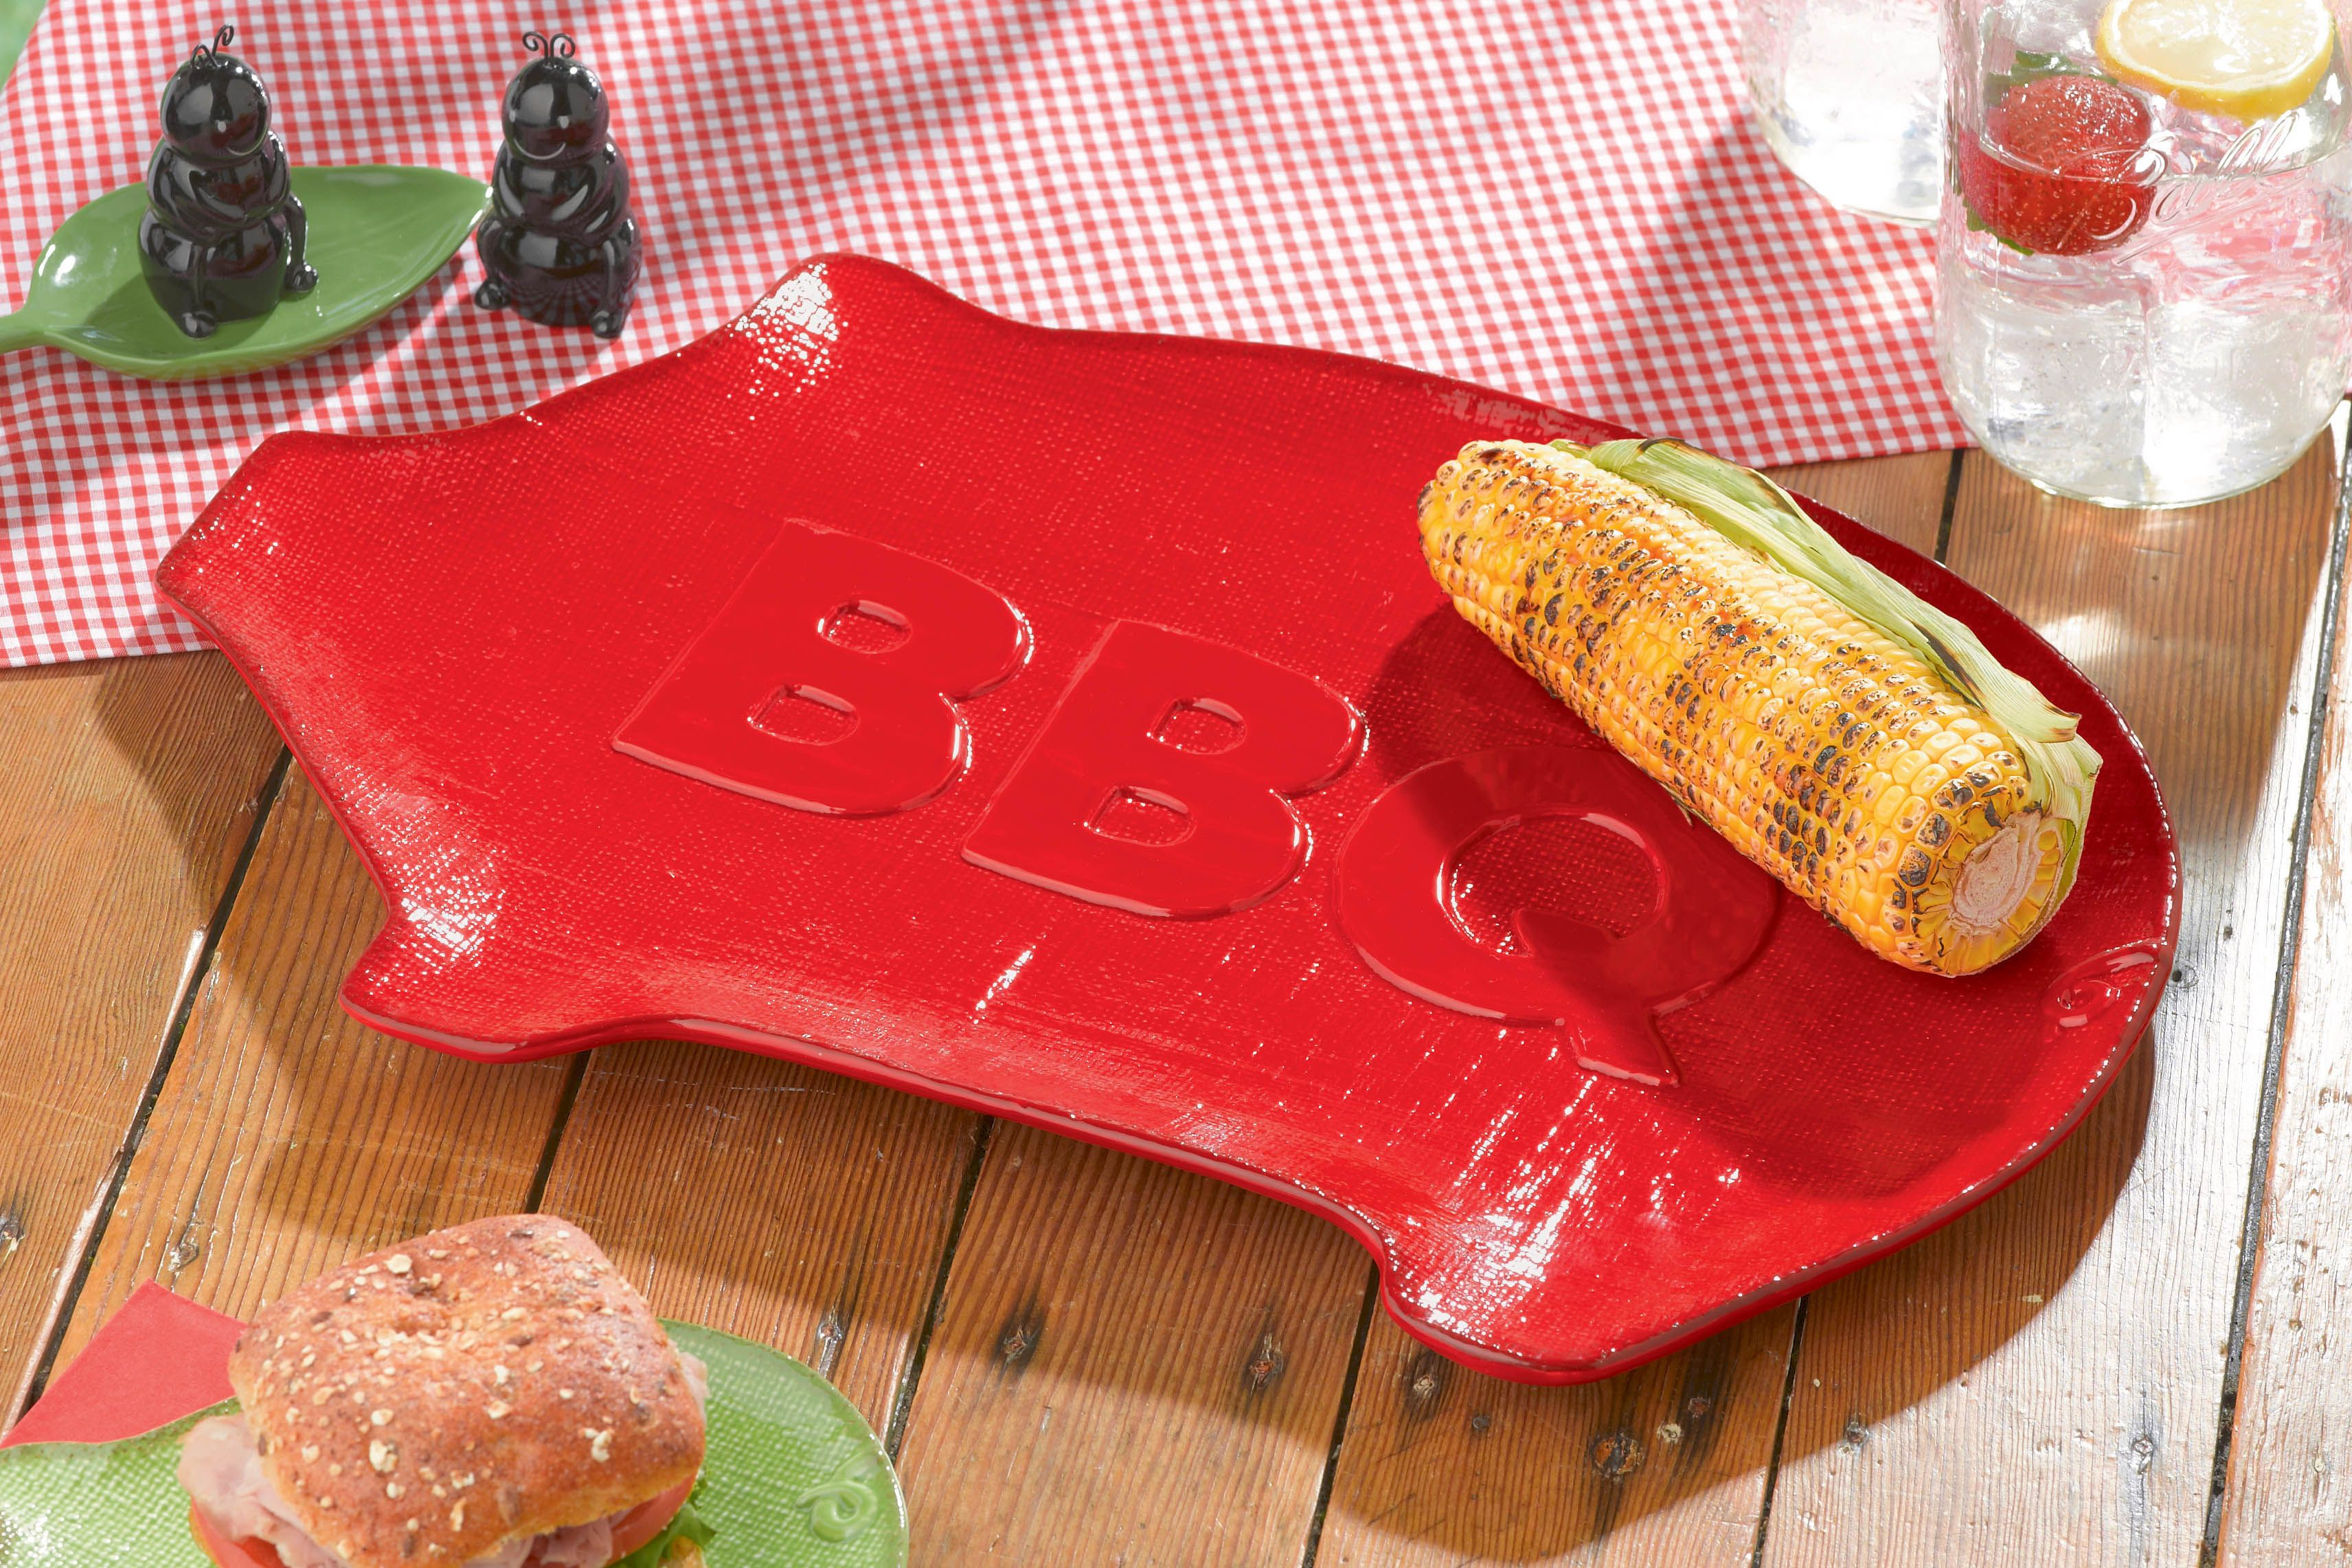 Ceramic Pig Serving Platter With Bbq Sculpted In The